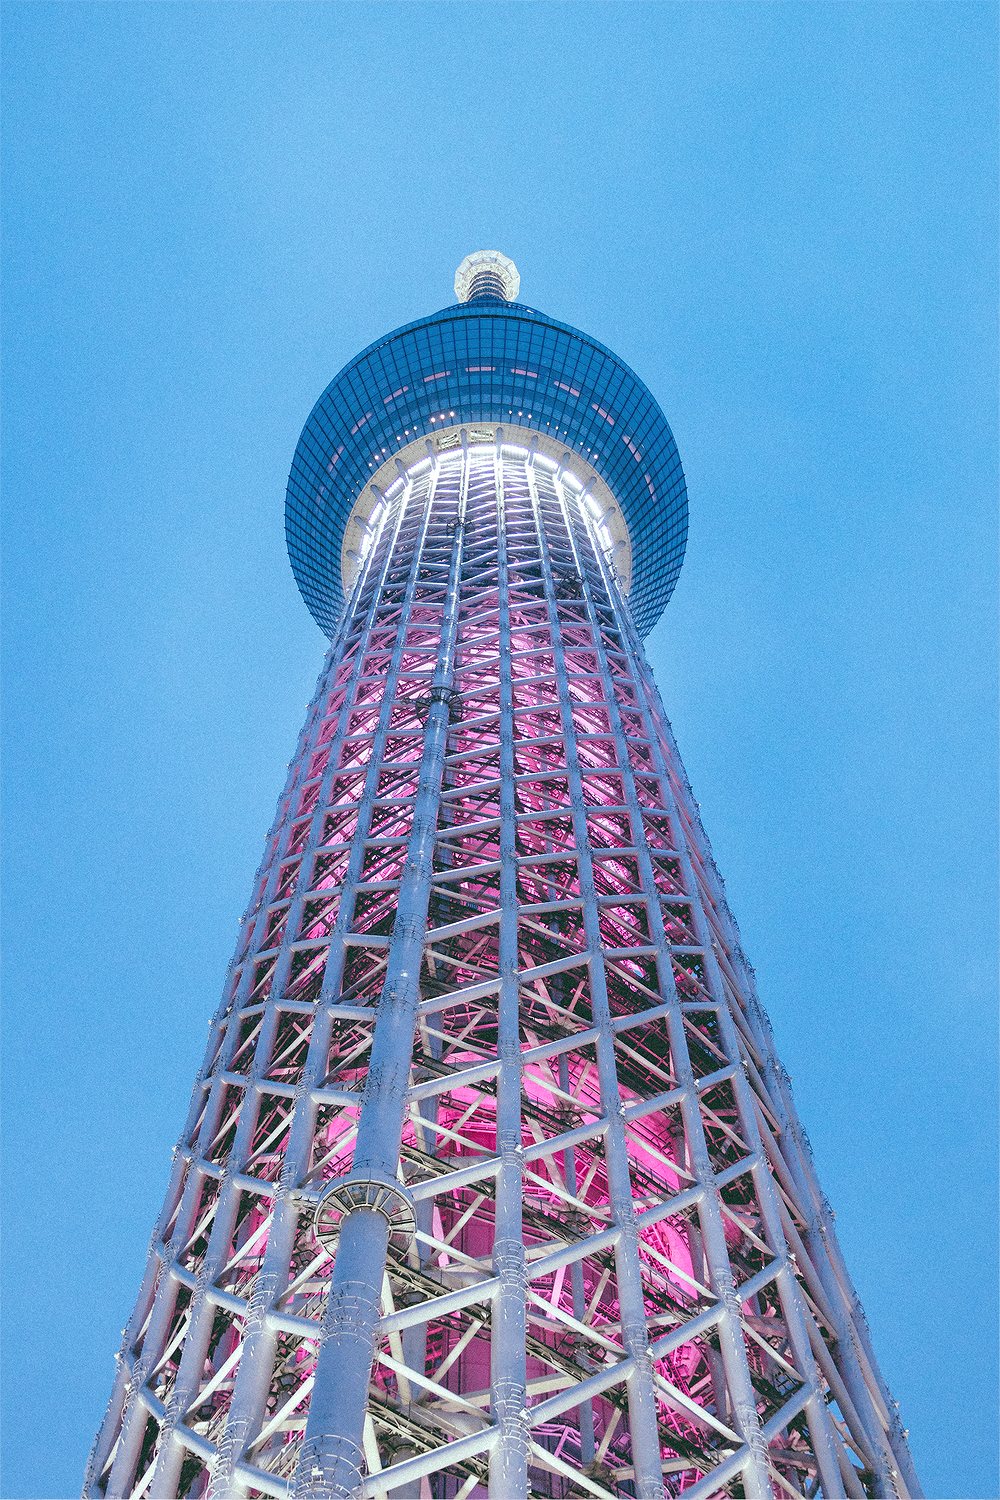 By the time we finished our tour, the SkyTree was illuminated.